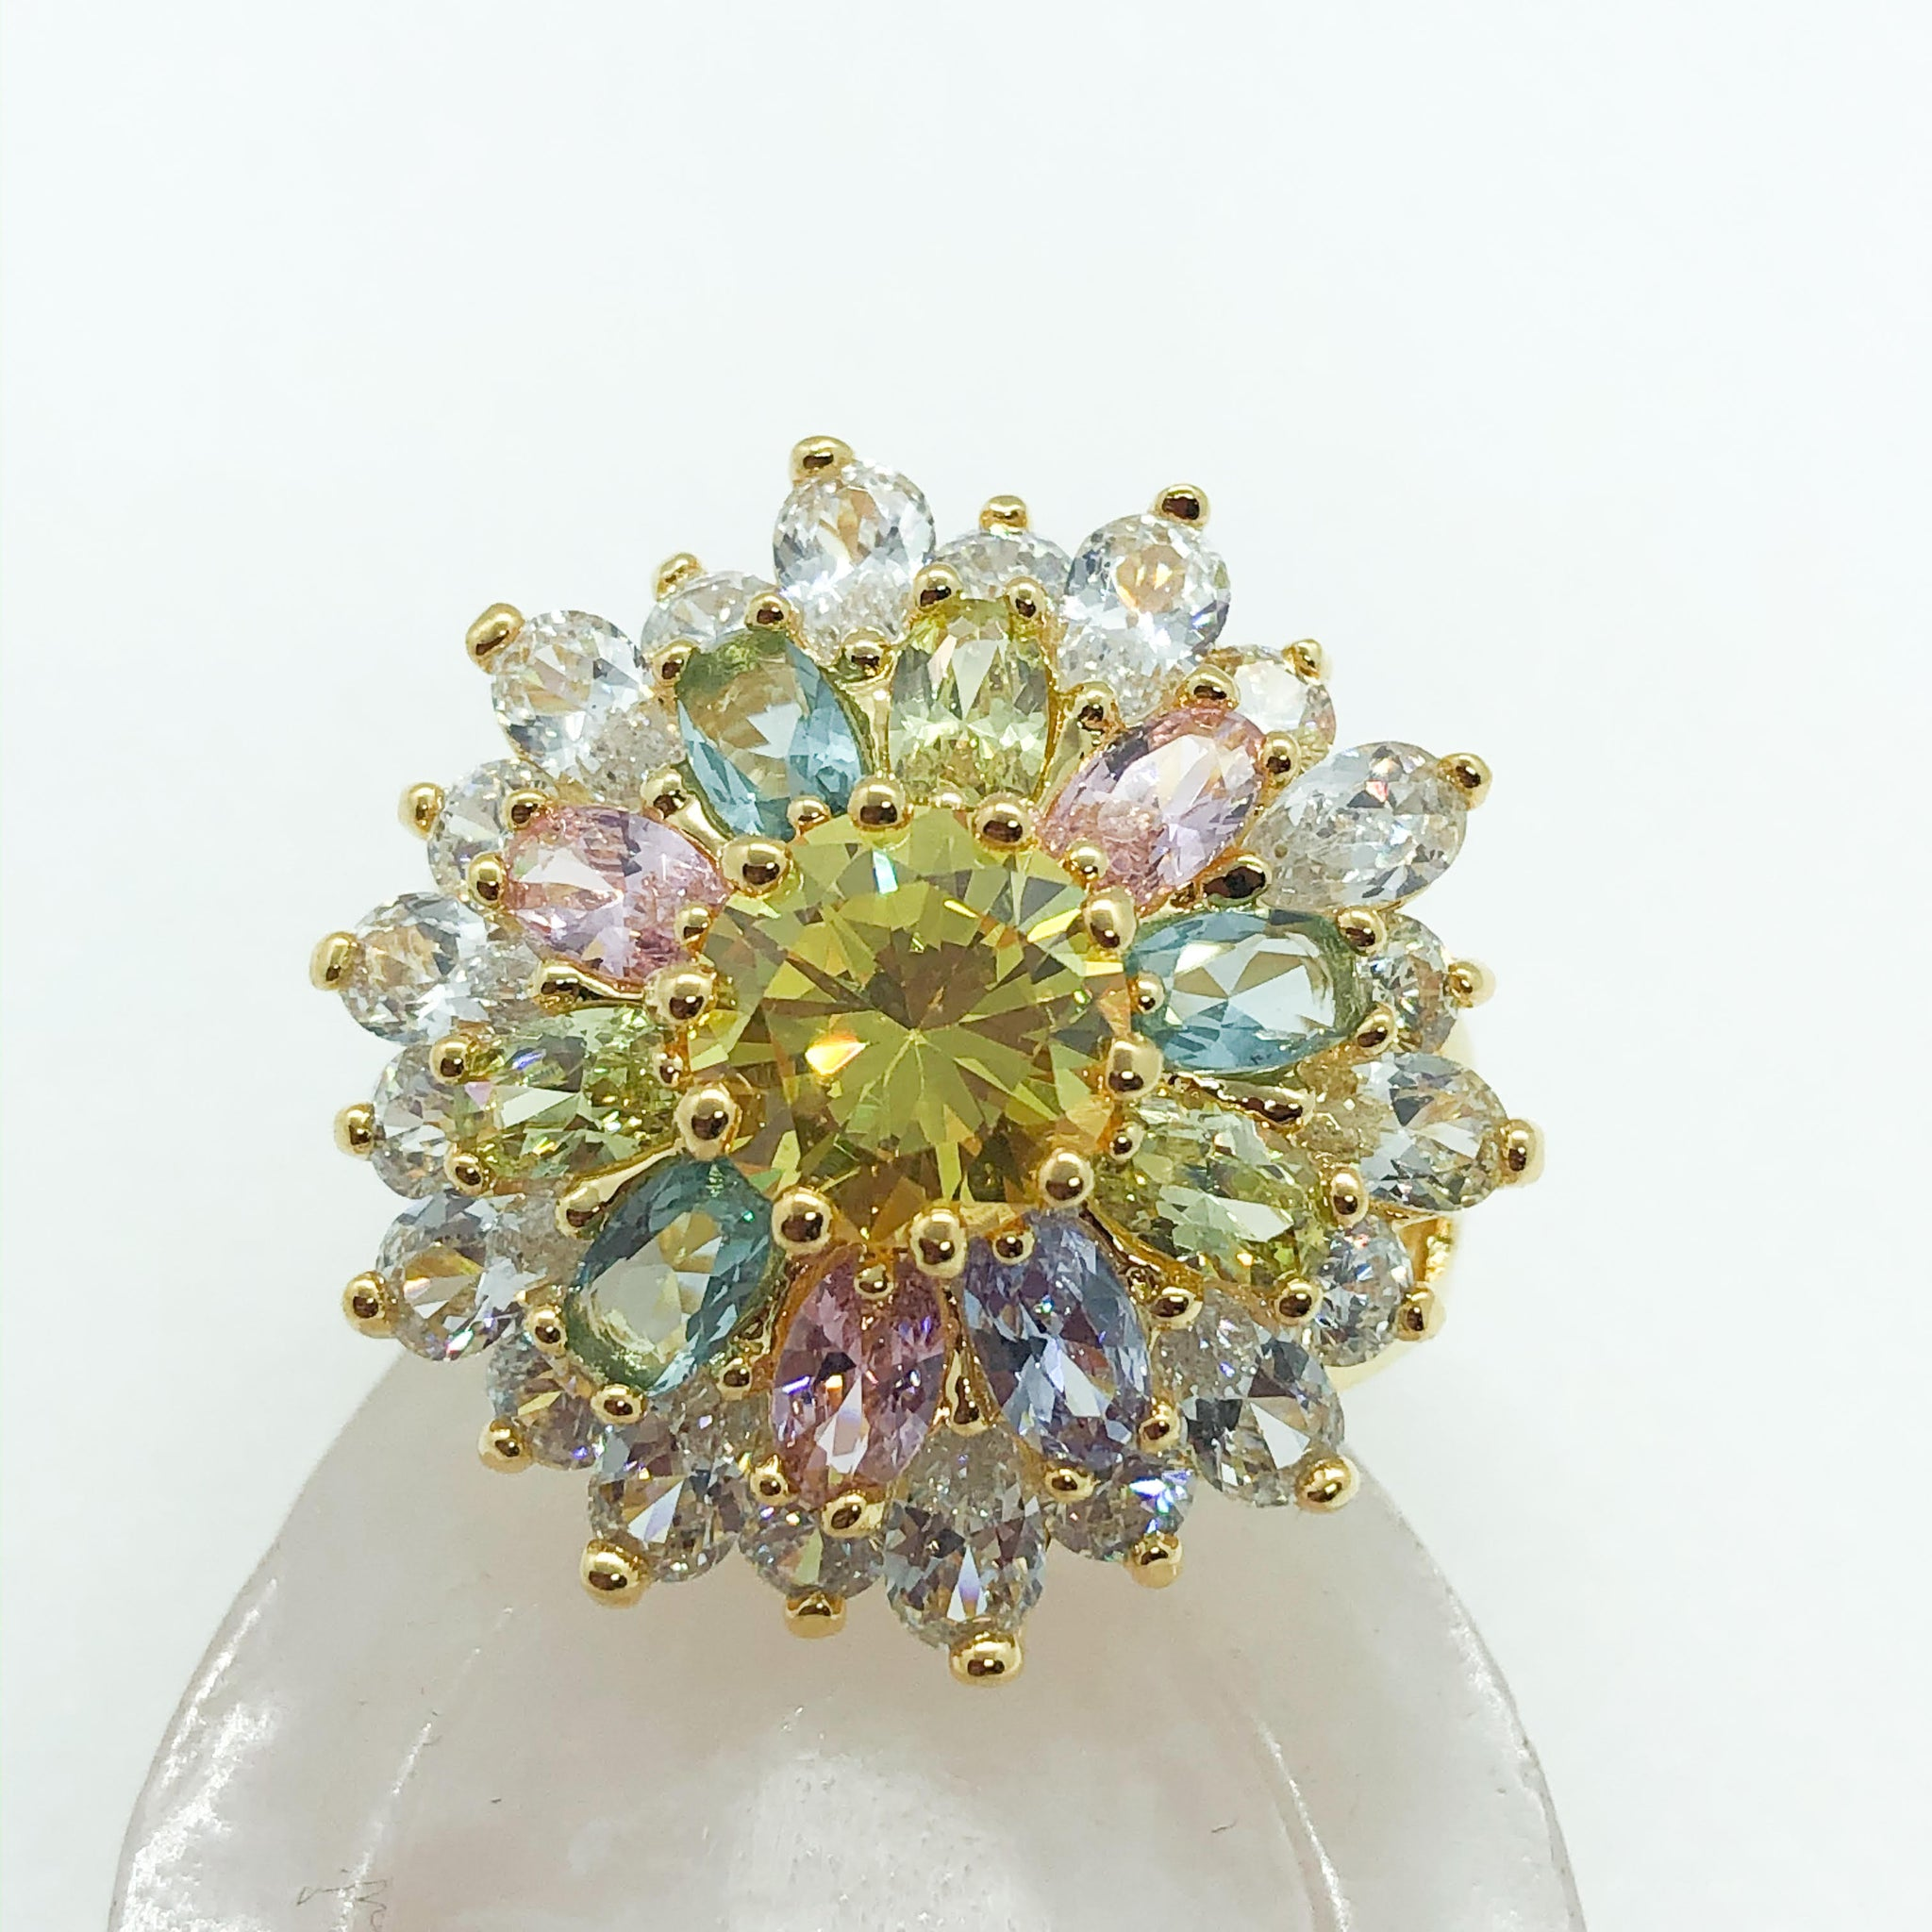 ID:R2098 Women Fashion Jewelry 18K Yellow Gold GF Unique Flower Design Color Crystal Cluster Cocktail Ring